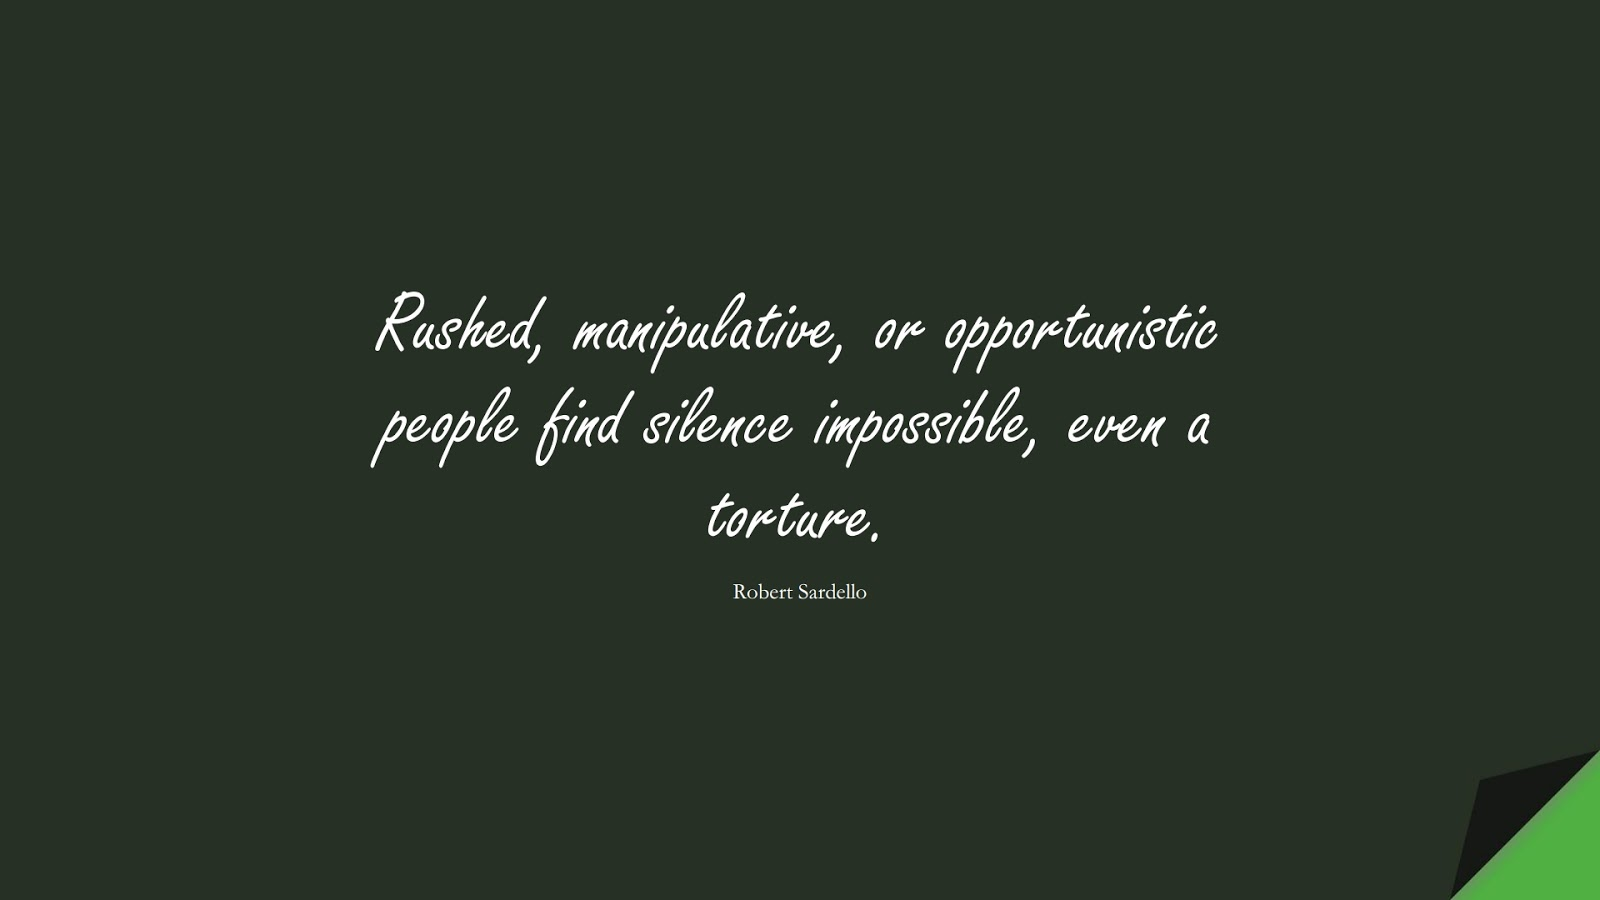 Rushed, manipulative, or opportunistic people find silence impossible, even a torture. (Robert Sardello);  #CalmQuotes